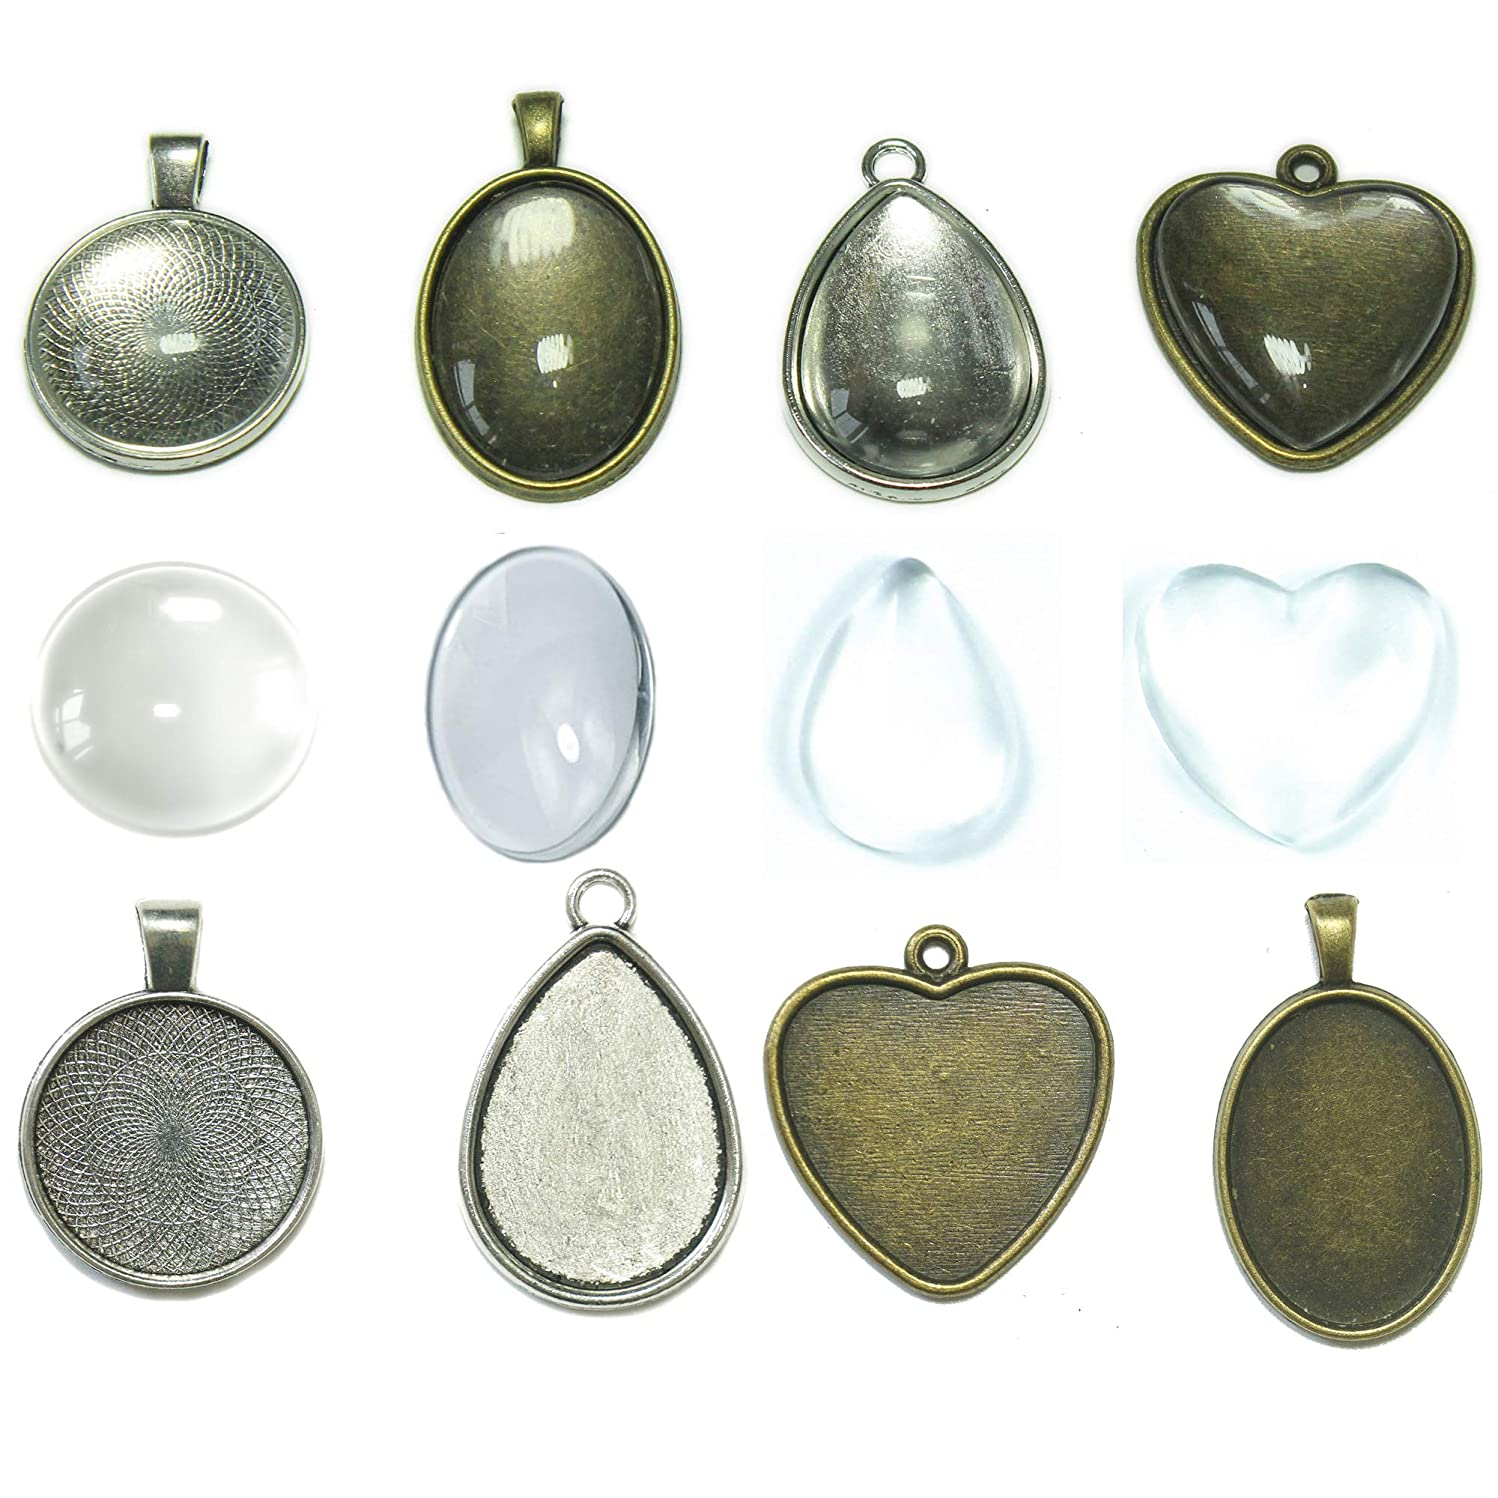 ALL in ONE Round + Oval + Heart + Teardrop Cabochon Set: 20pcs Cabochon Frame Tray Pendant with 20pcs Glass Dome for DIY Jewelry Making Jewelry Making DIY Findings (Antique Bronze & Silver)